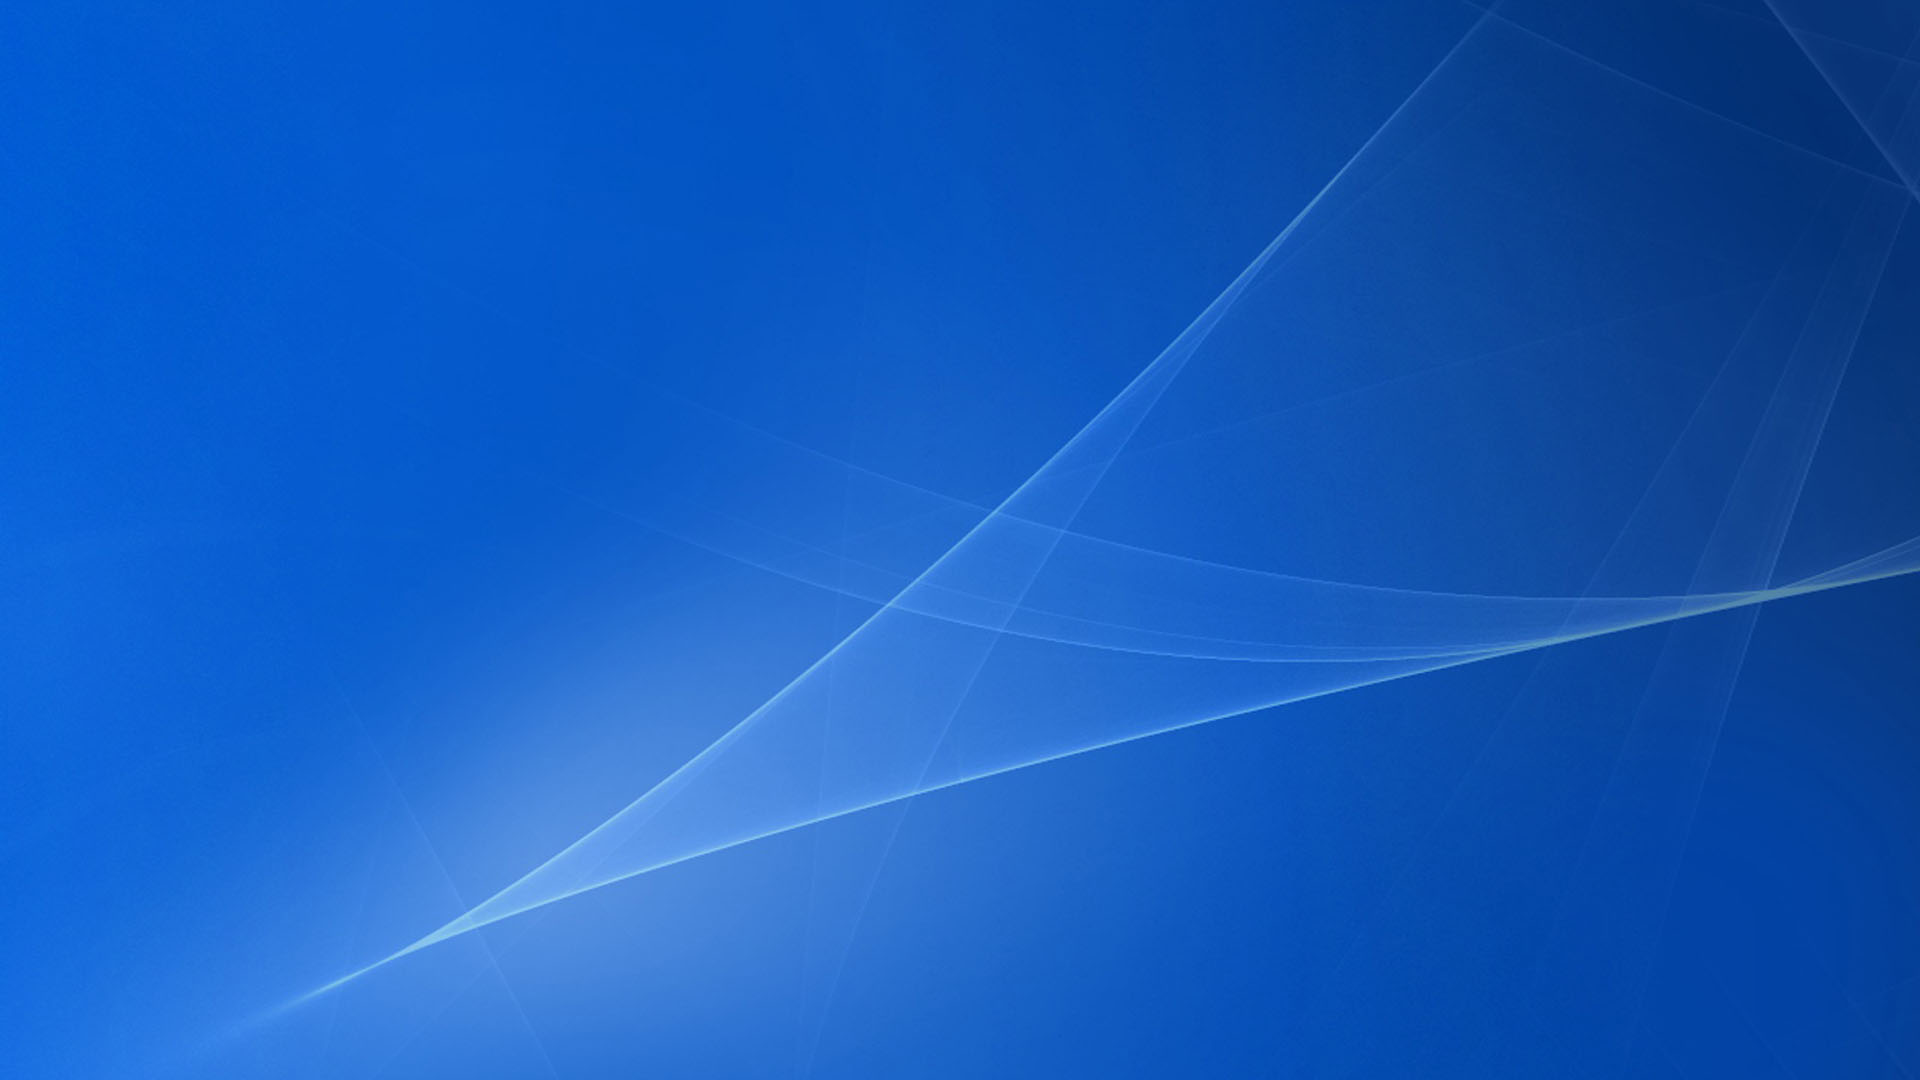 Blue Hd Wallpapers 1080P   1577309 1920x1080